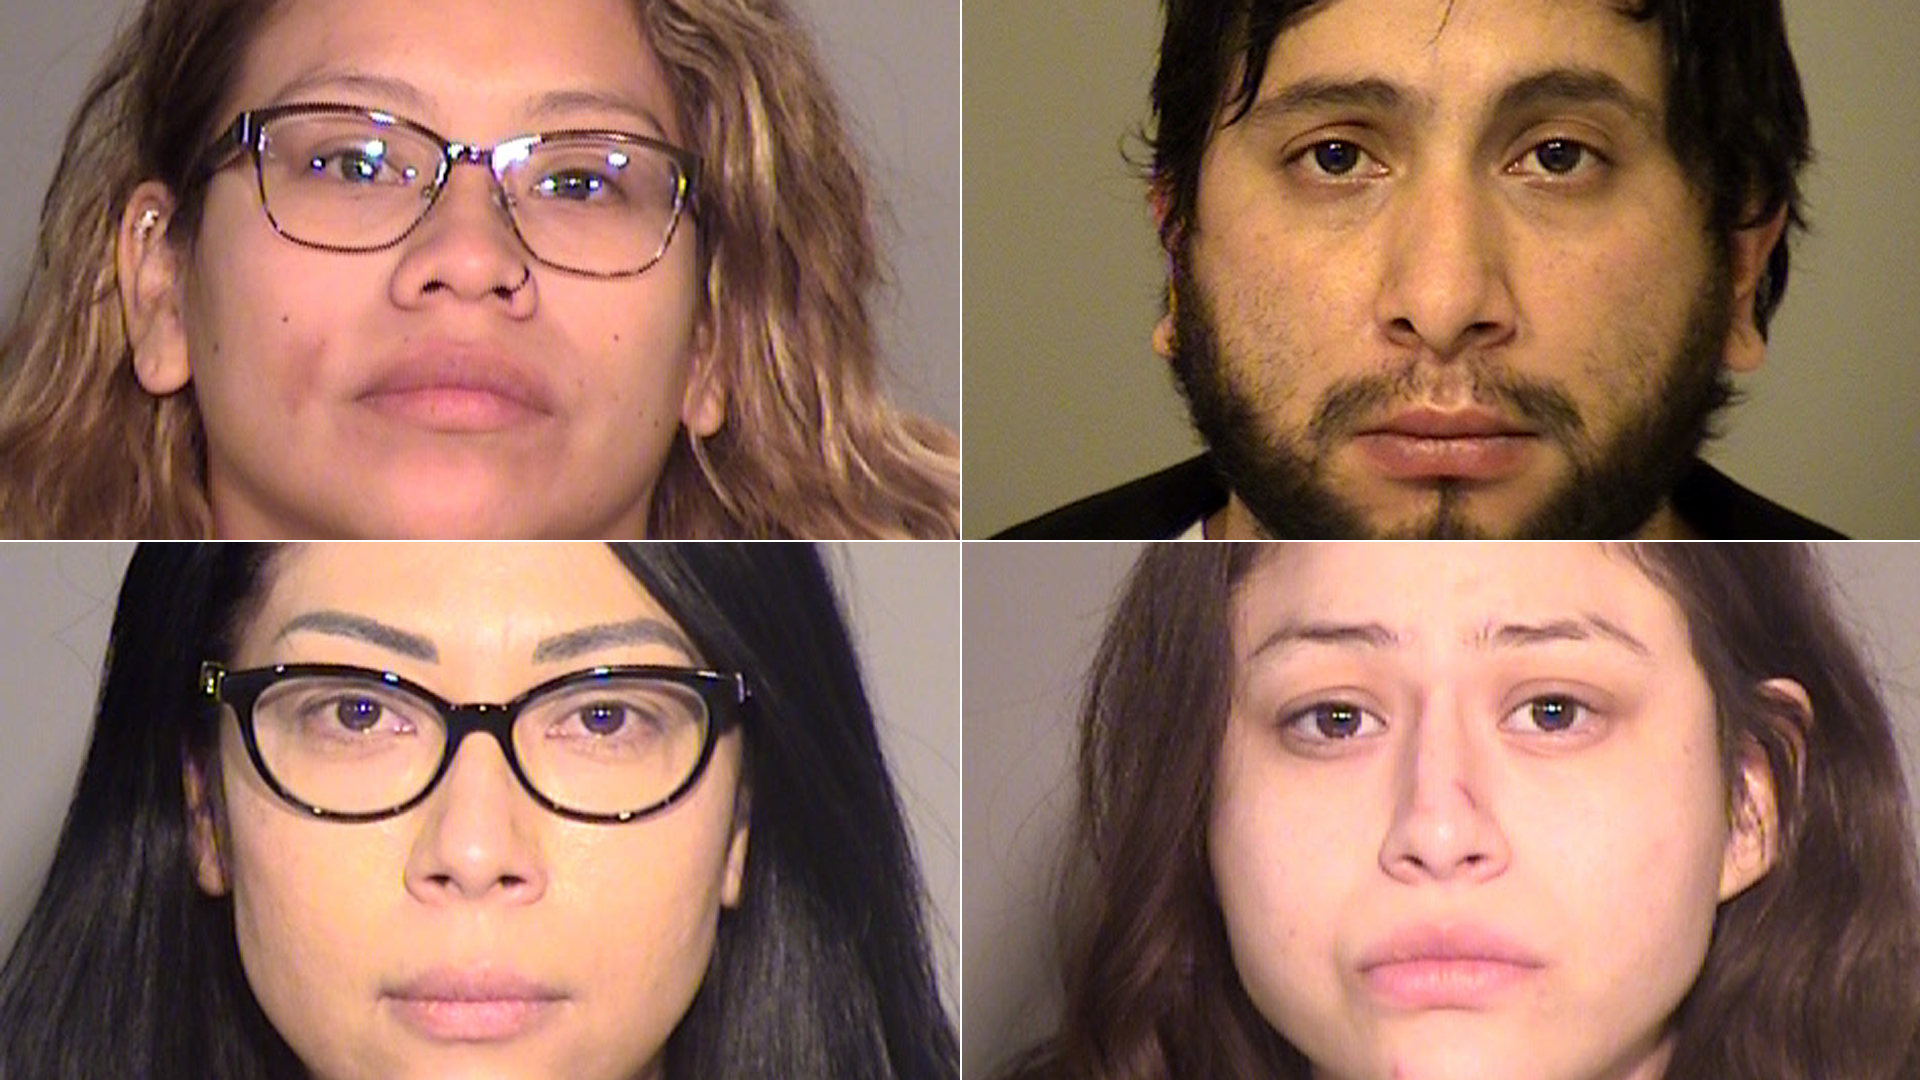 (Top left to right) Flor De Maria Evora, Jaime Vasquez, Olga Paredes and Olga Ramirez are shown in photos released by the Ventura County Sheriff's Office on March 4, 2021.